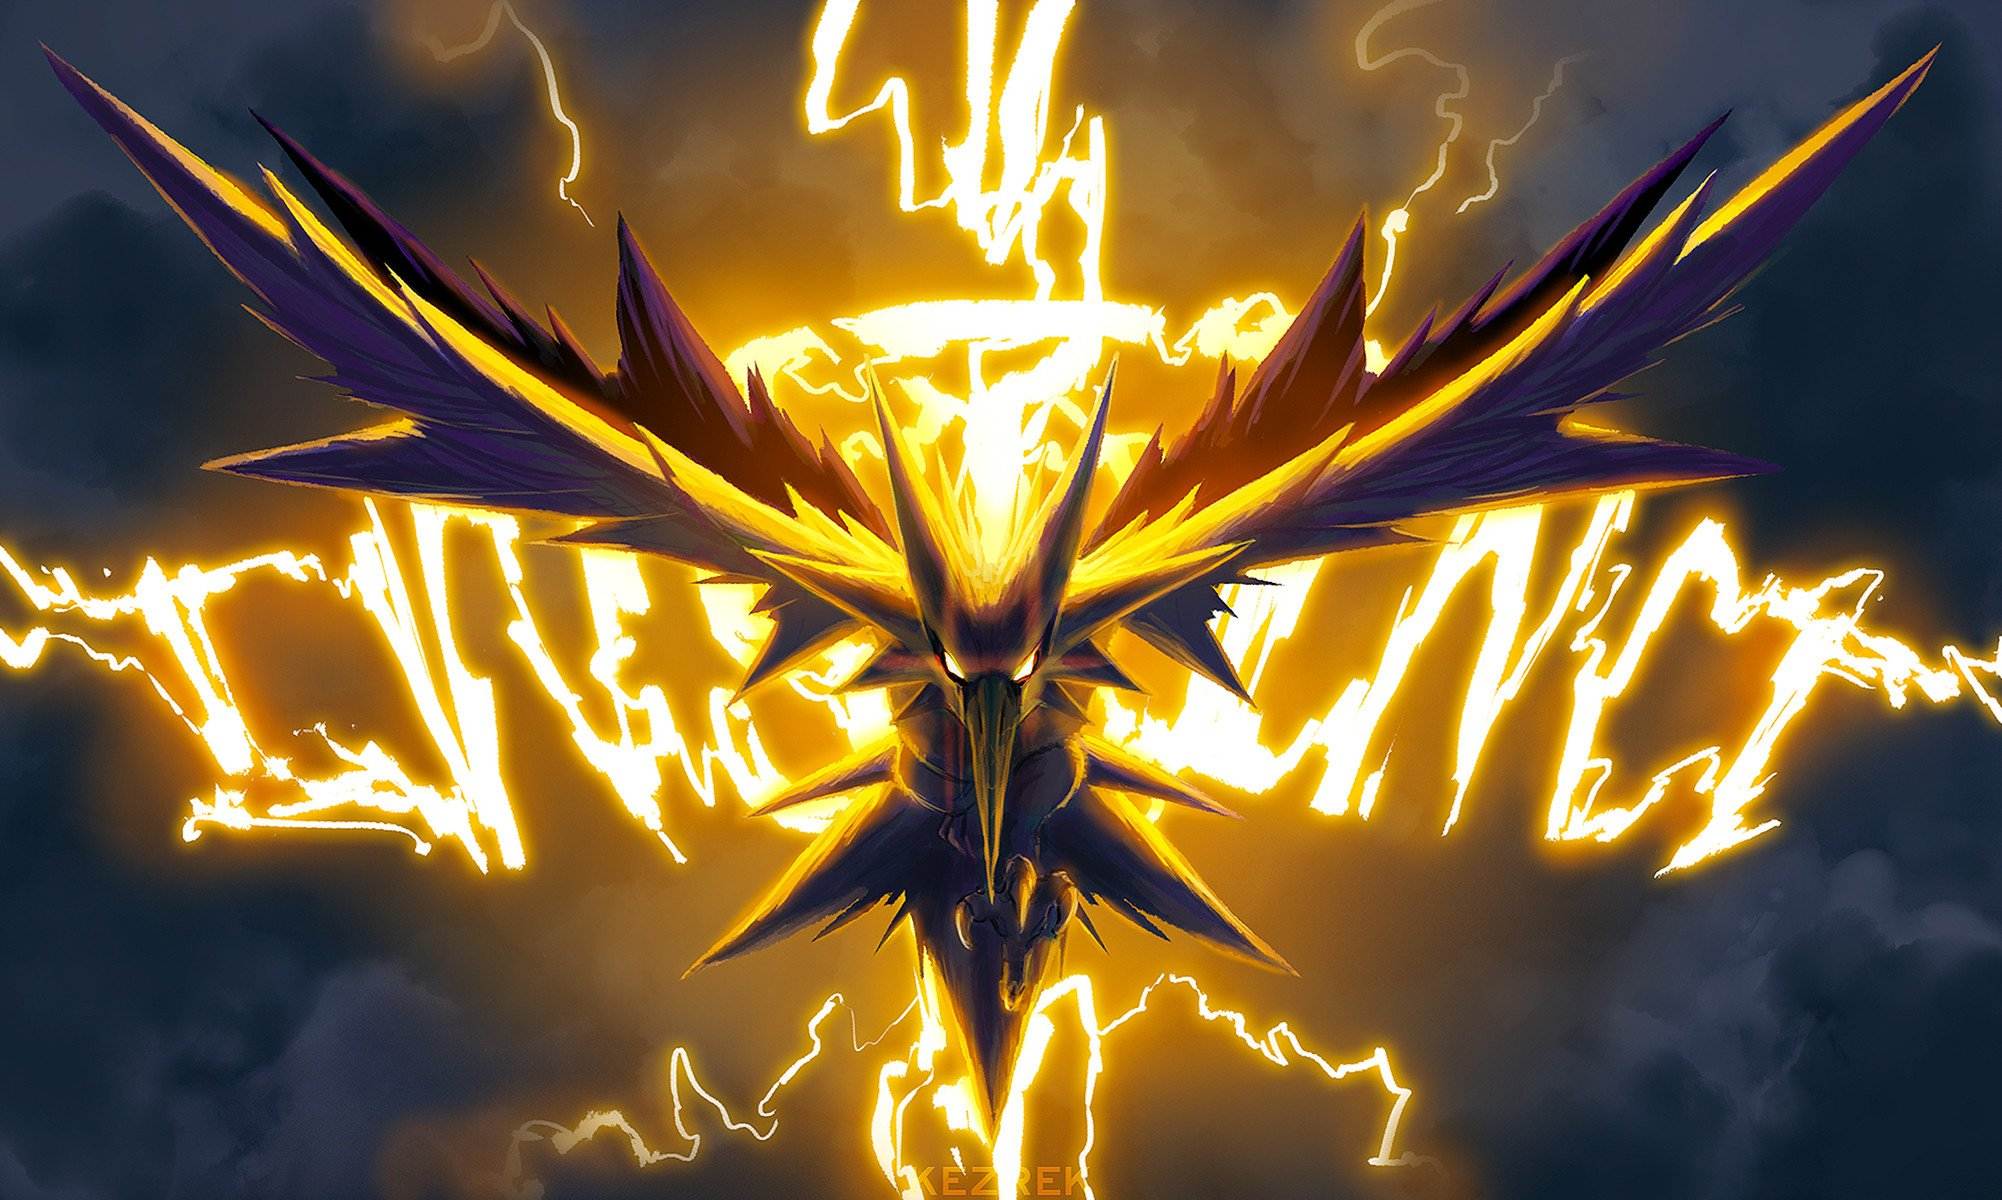 Ho Oh and Lugia Wallpaper 63 images 2002x1200